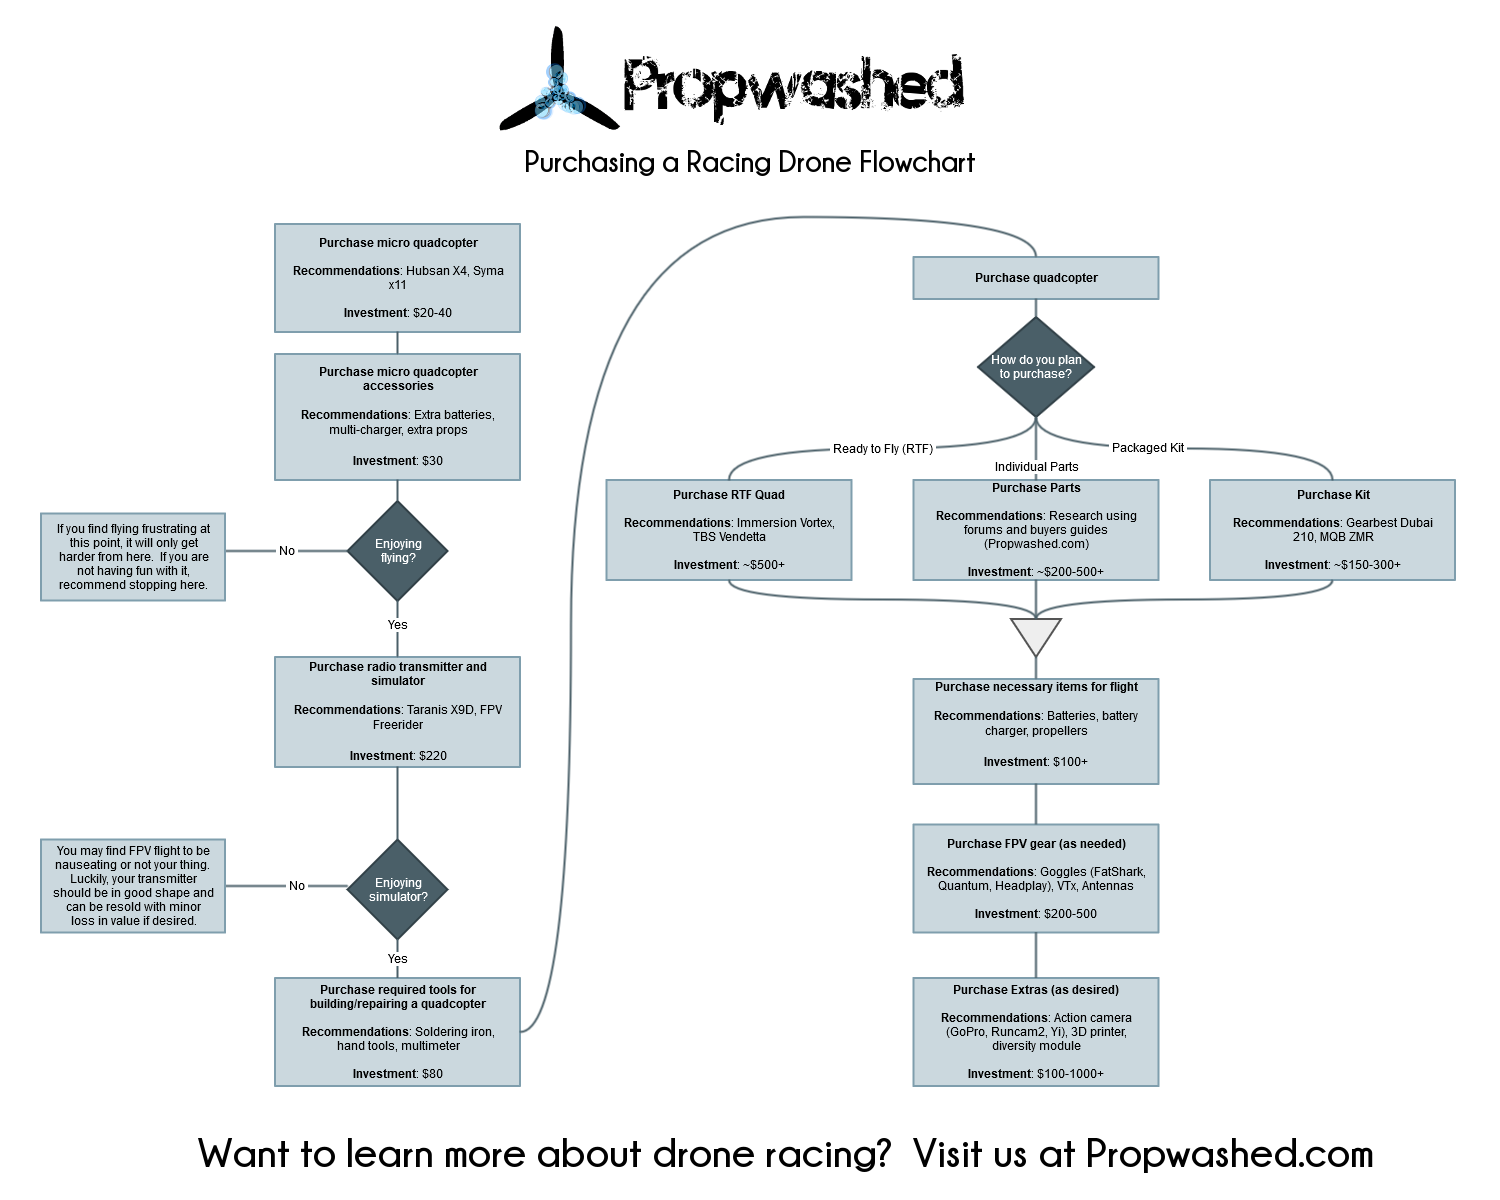 Propwashed Purchasing a Racing Drone Flowchart